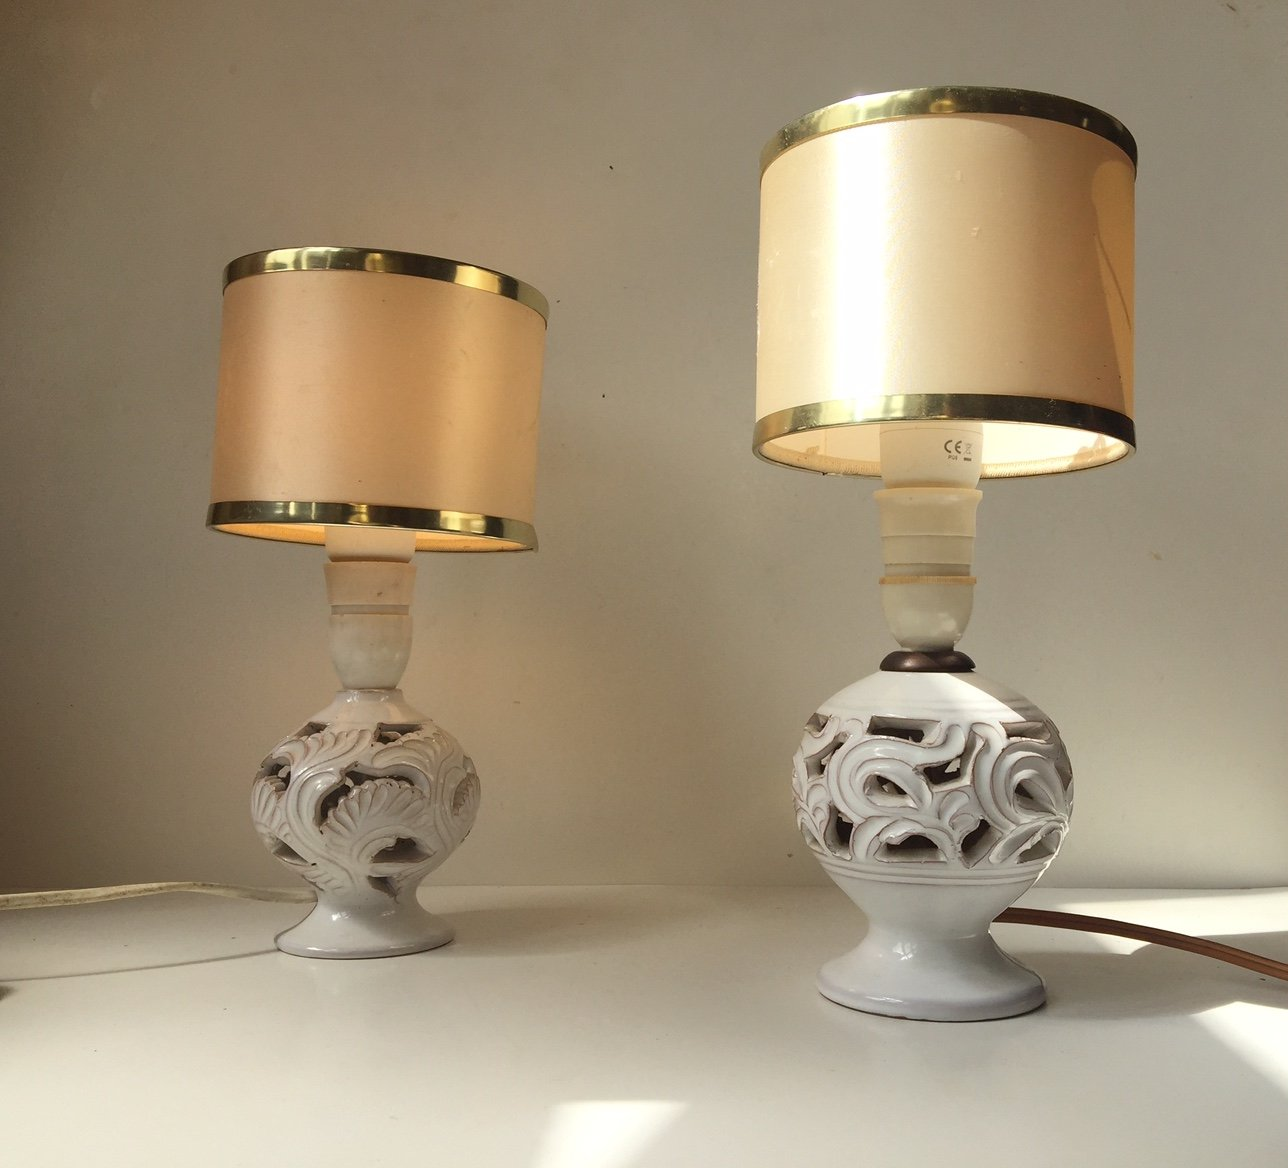 Marvelous Vintage Perforated Danish Pottery Table Lamps By Michael Andersen, Set Of 2  For Sale At Pamono